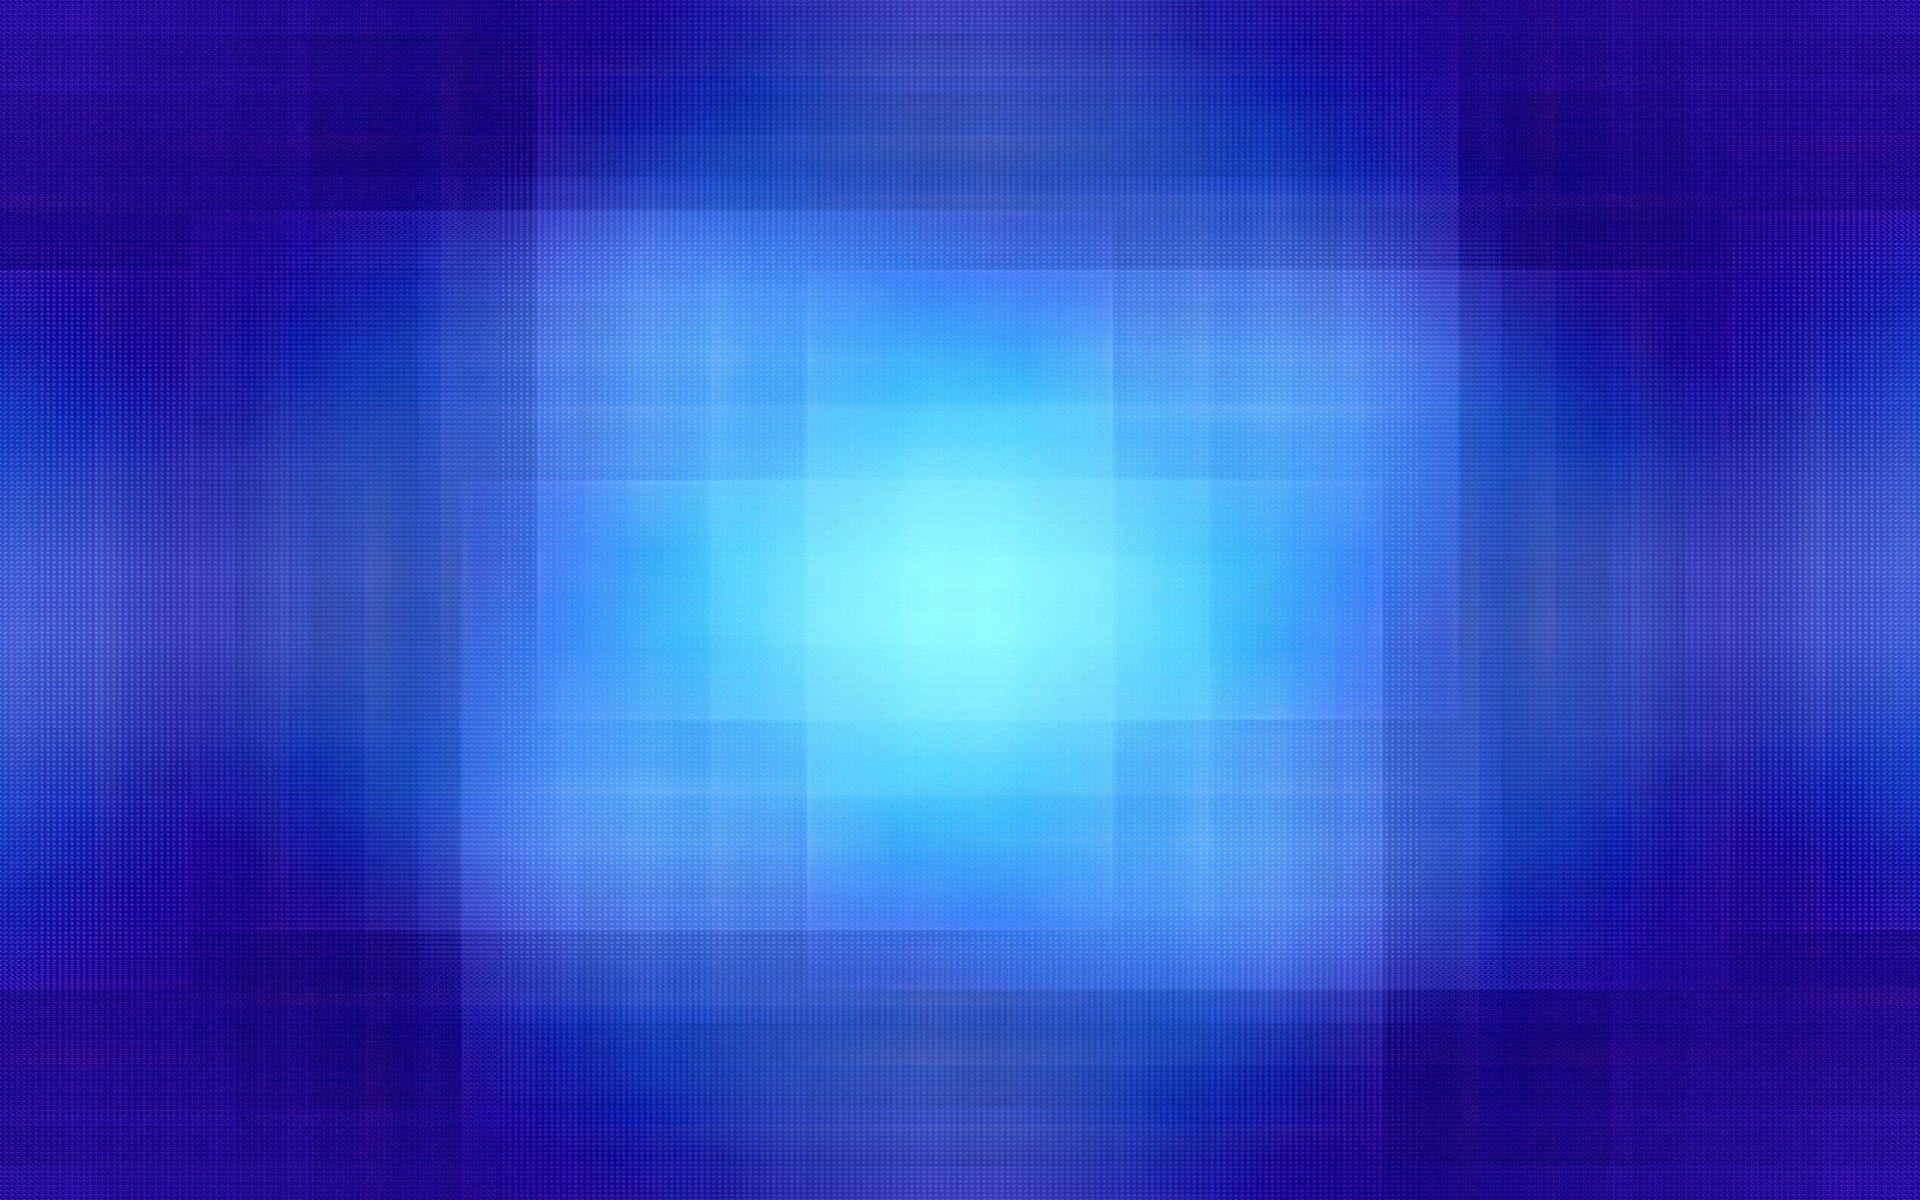 153445 download wallpaper Textures, Background, Shine, Light, Texture, Cells screensavers and pictures for free